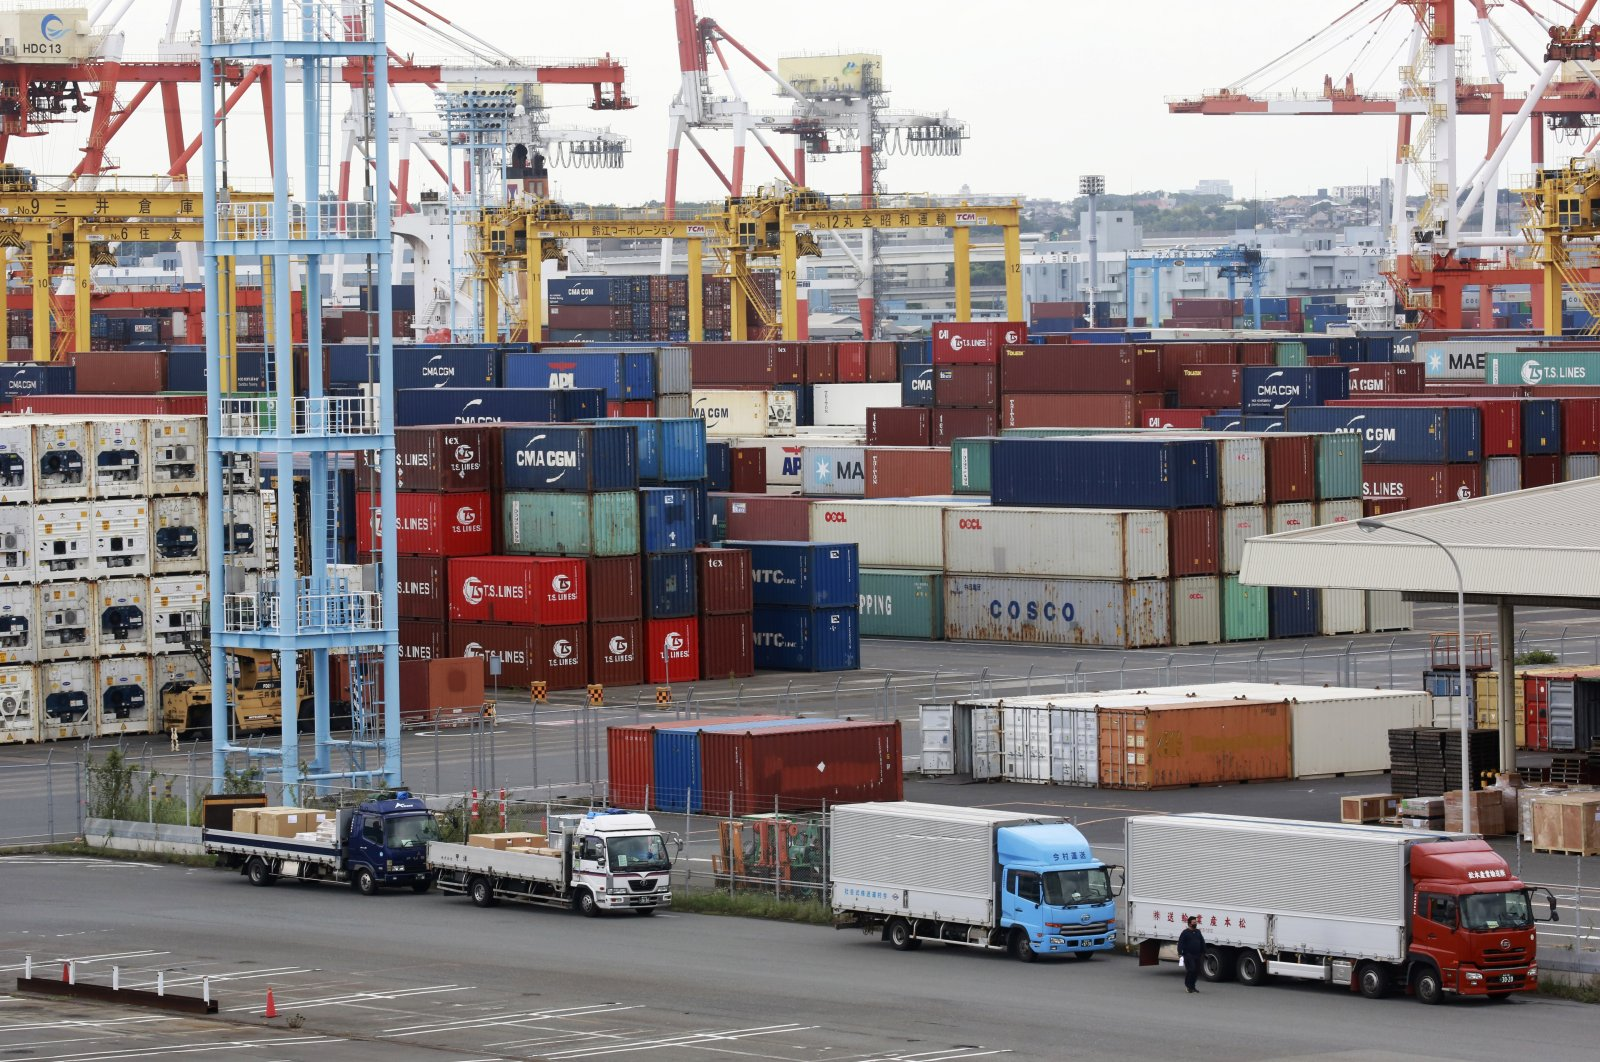 Containers are placed at a port in Yokohama, south of Tokyo, Japan, Sept. 7, 2021. (AP Photo)